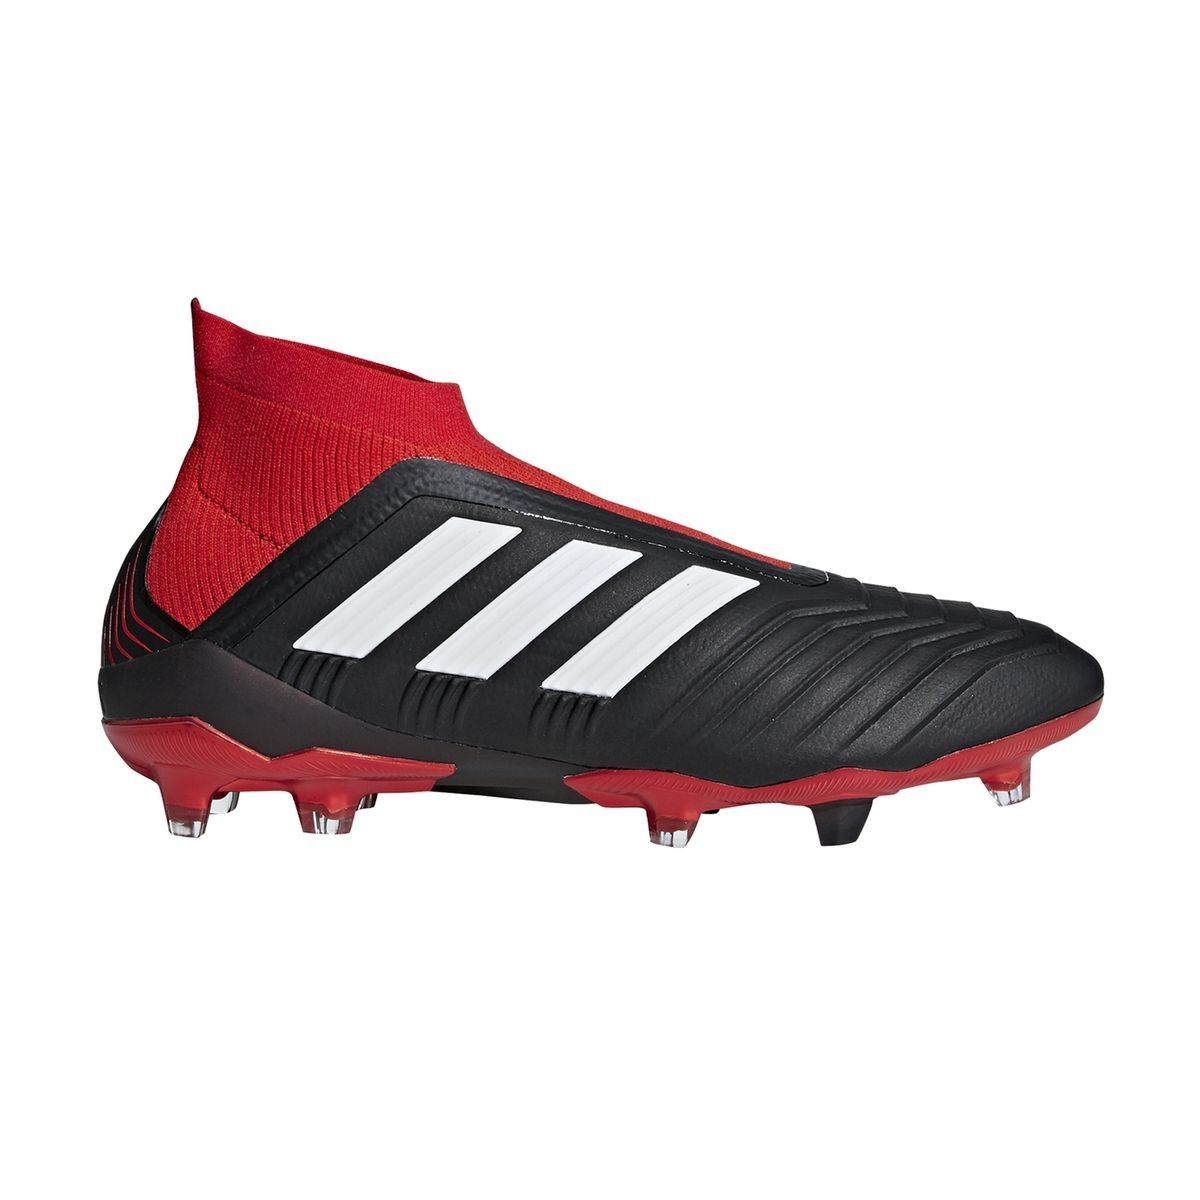 Predator Taille41 2 Rouge Lqa5r3c4js Football 18fg Chaussures 13;42;42 YDWIeH2E9